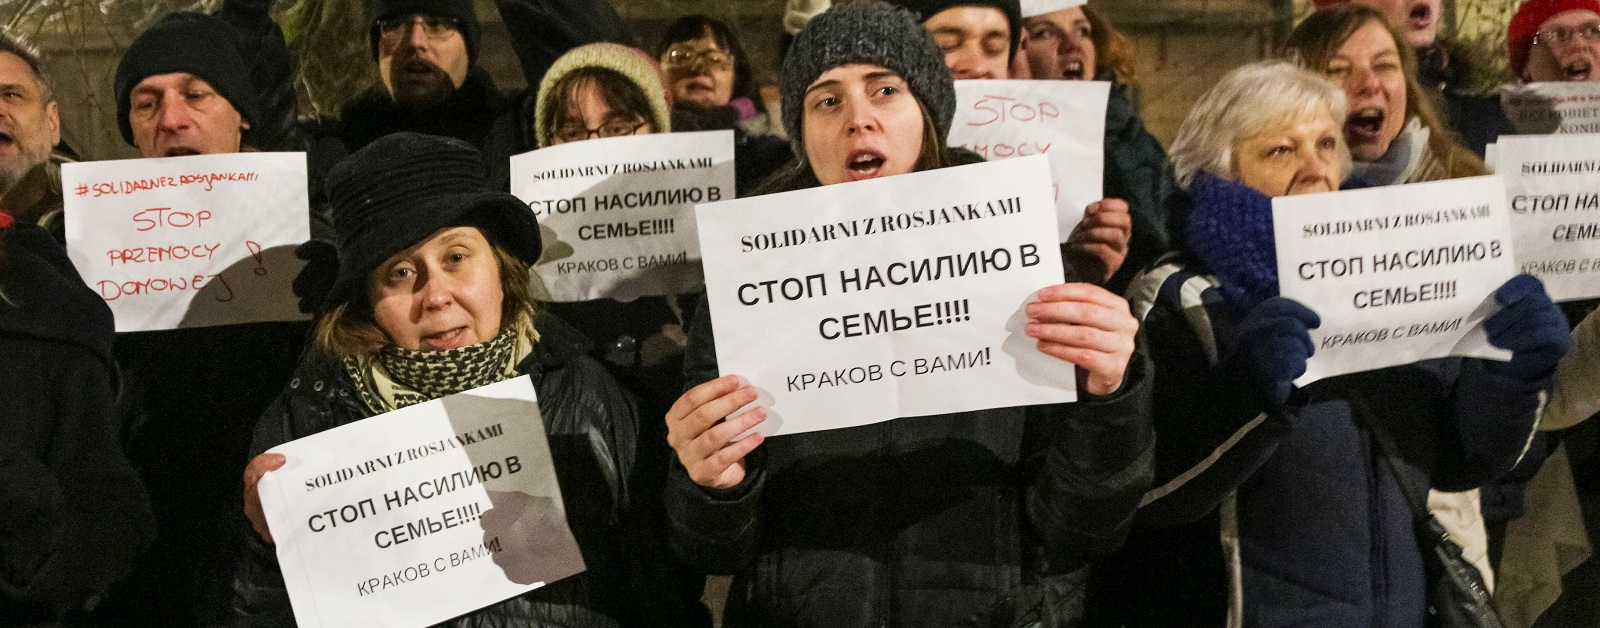 A Polish protest against domestic violence outside the Russian Consulate in Krakow (Photo: Beata Zawrzel/Getty Images)